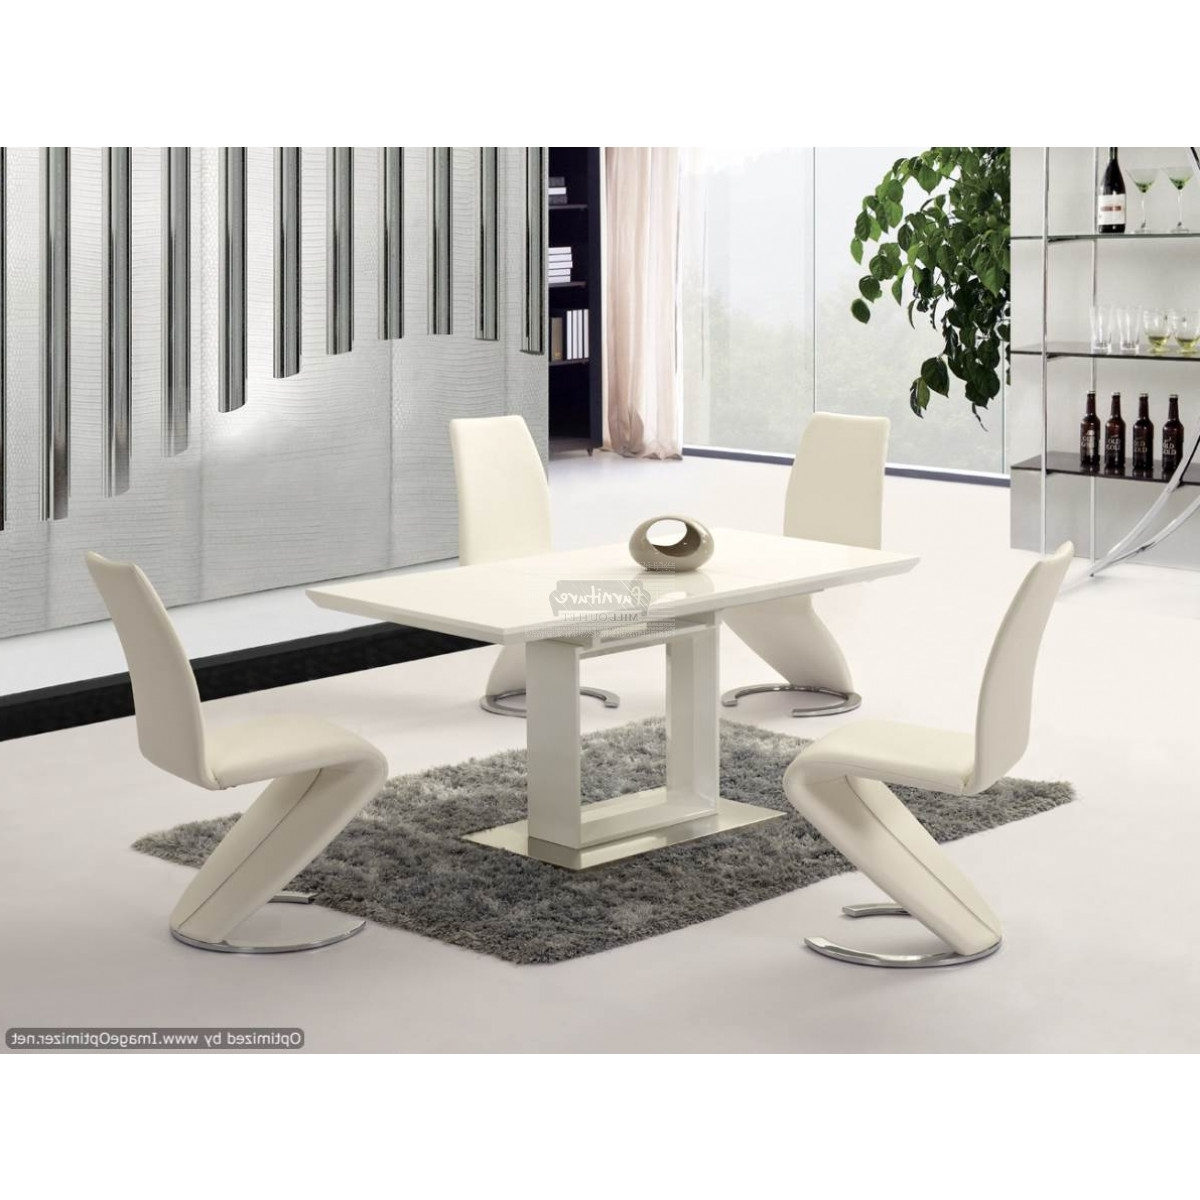 High Gloss White Extending Dining Tables for Recent Space White High Gloss Extending Dining Table - 120Cm To 160Cm